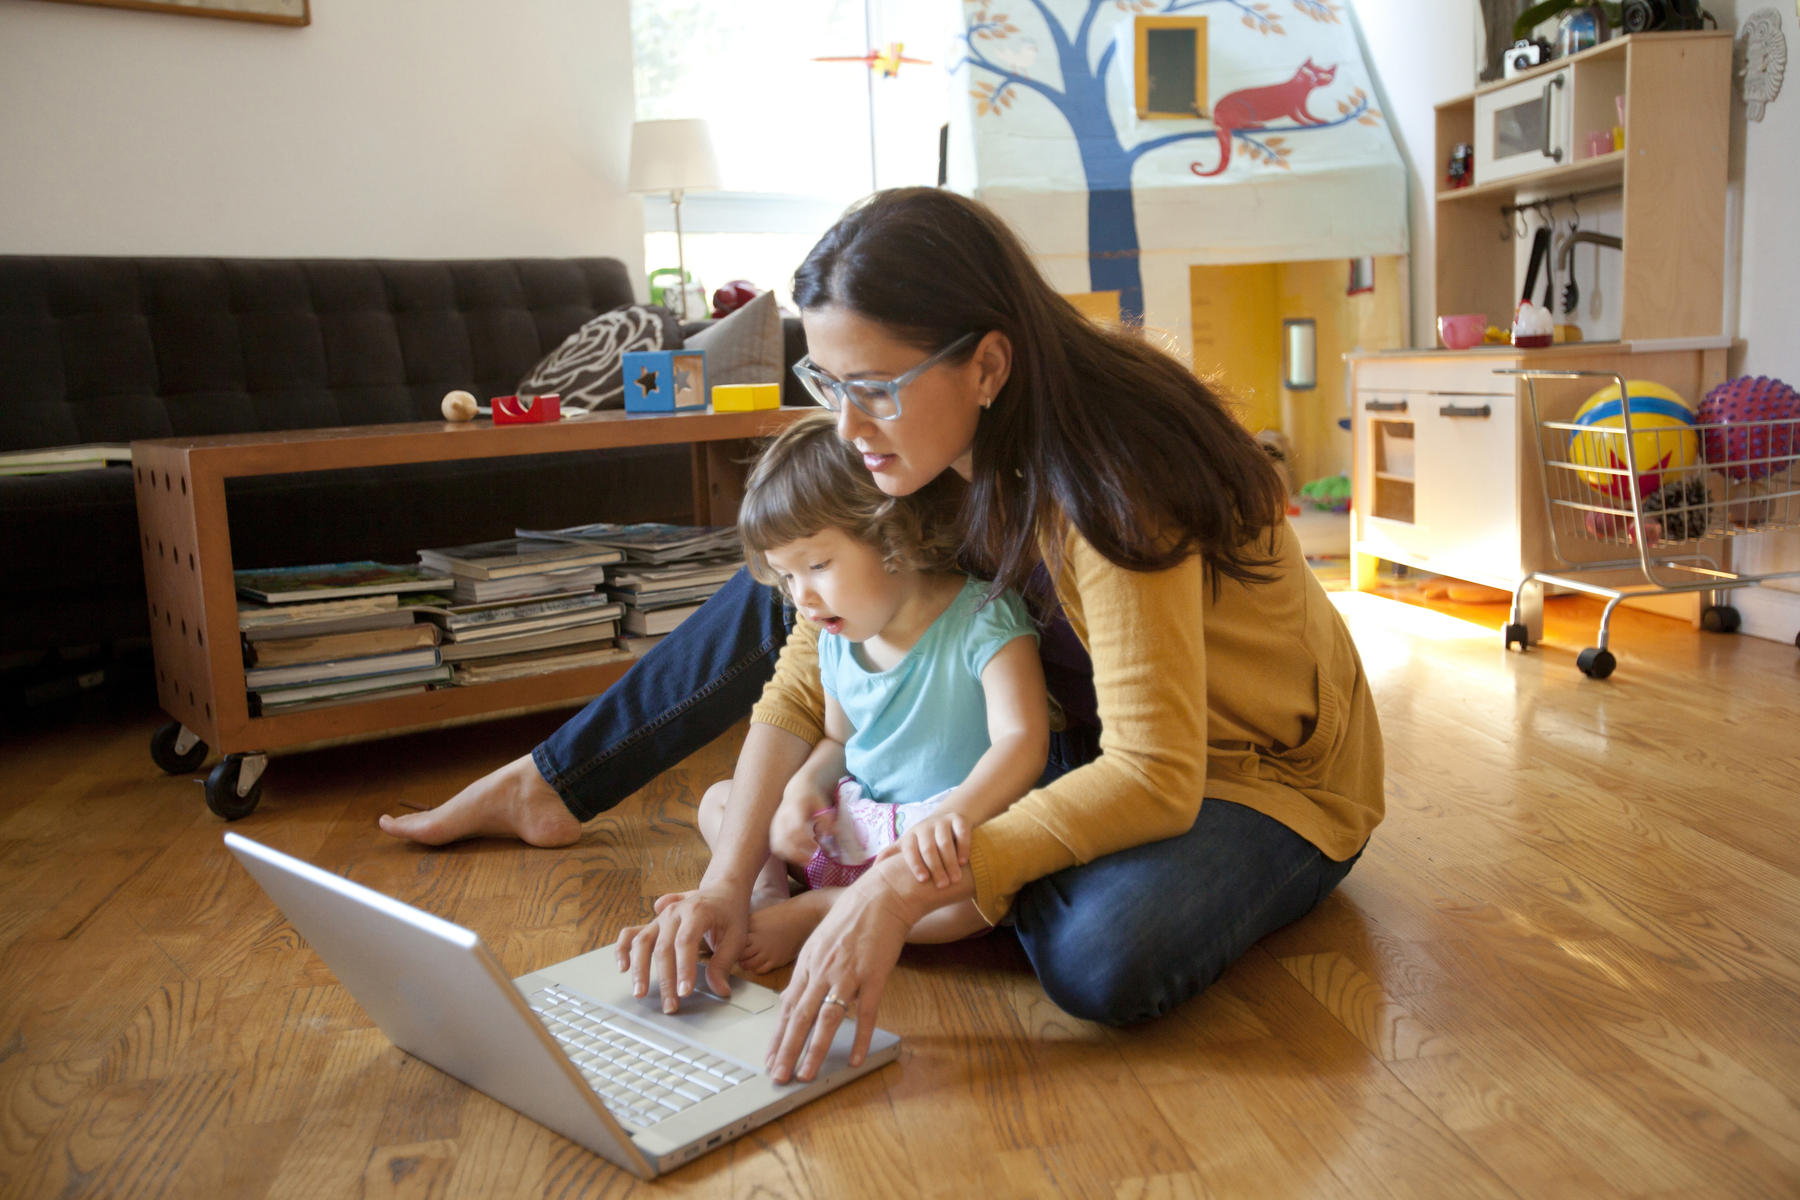 Mother and daughter using laptop in living room